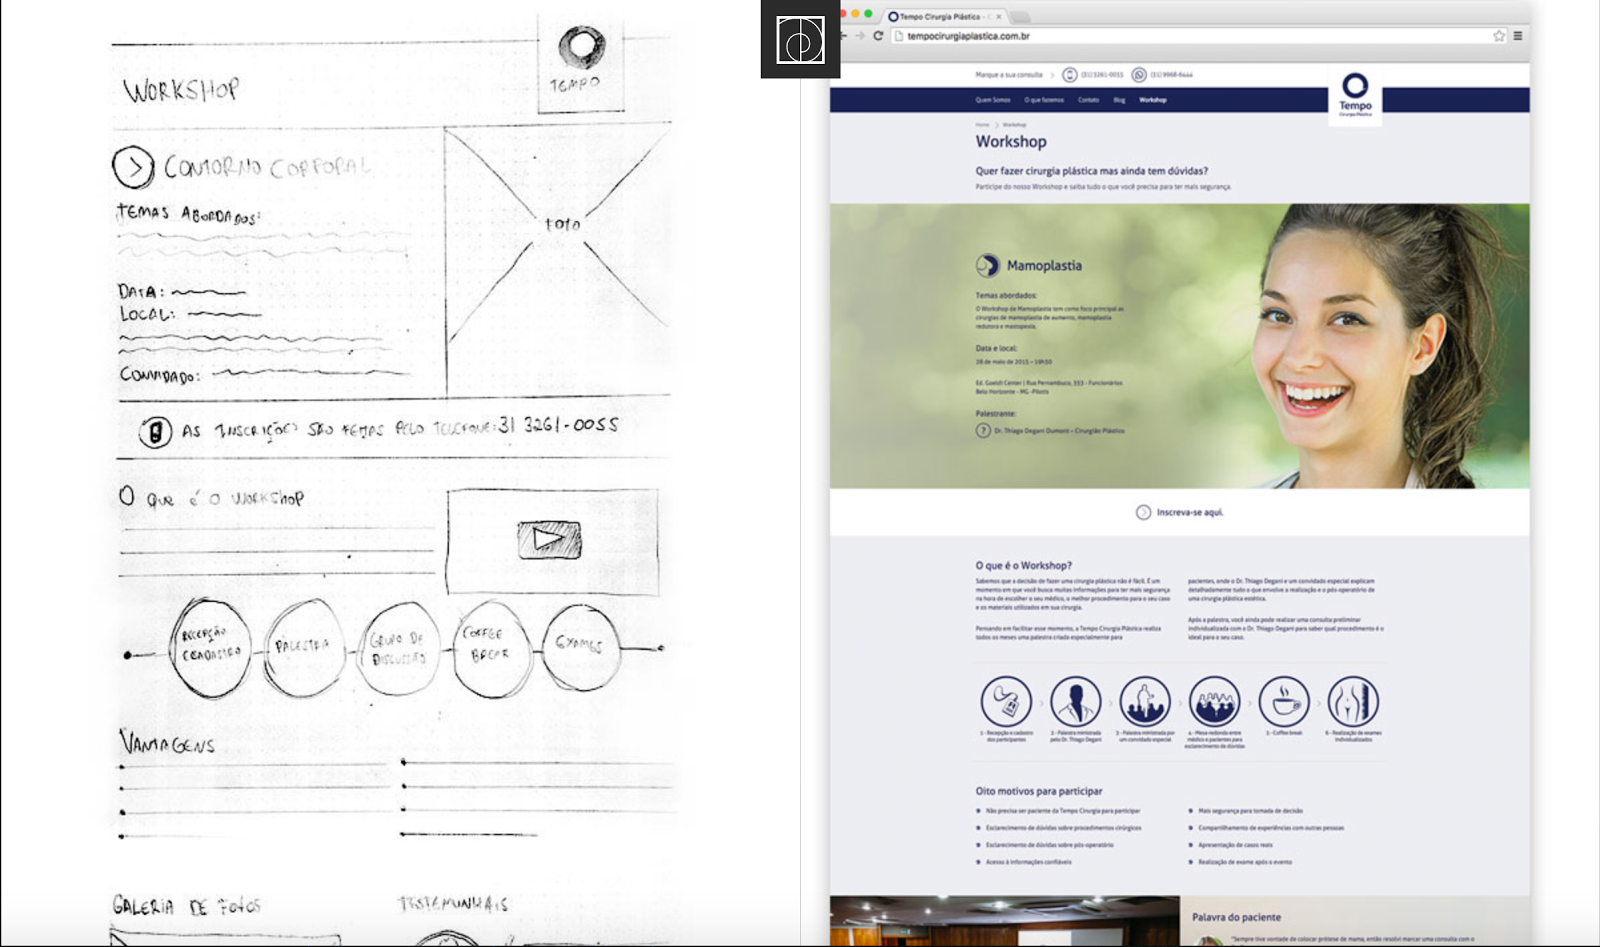 Showing various stages of your design process adds depth to your portfolio website